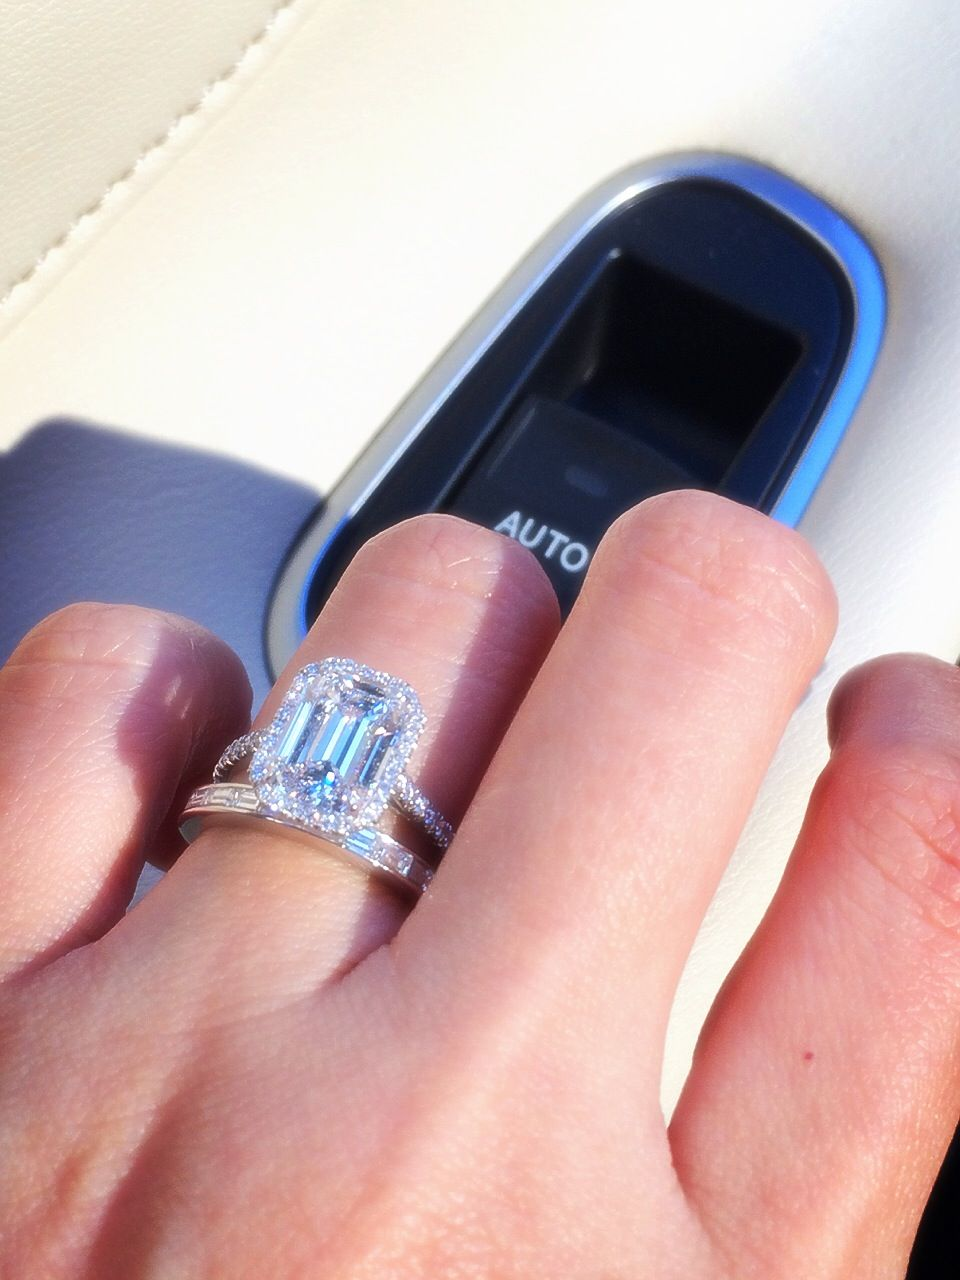 Tiffany & Co. soleste with an emerald cut halo diamond, color E,VVS1 ...